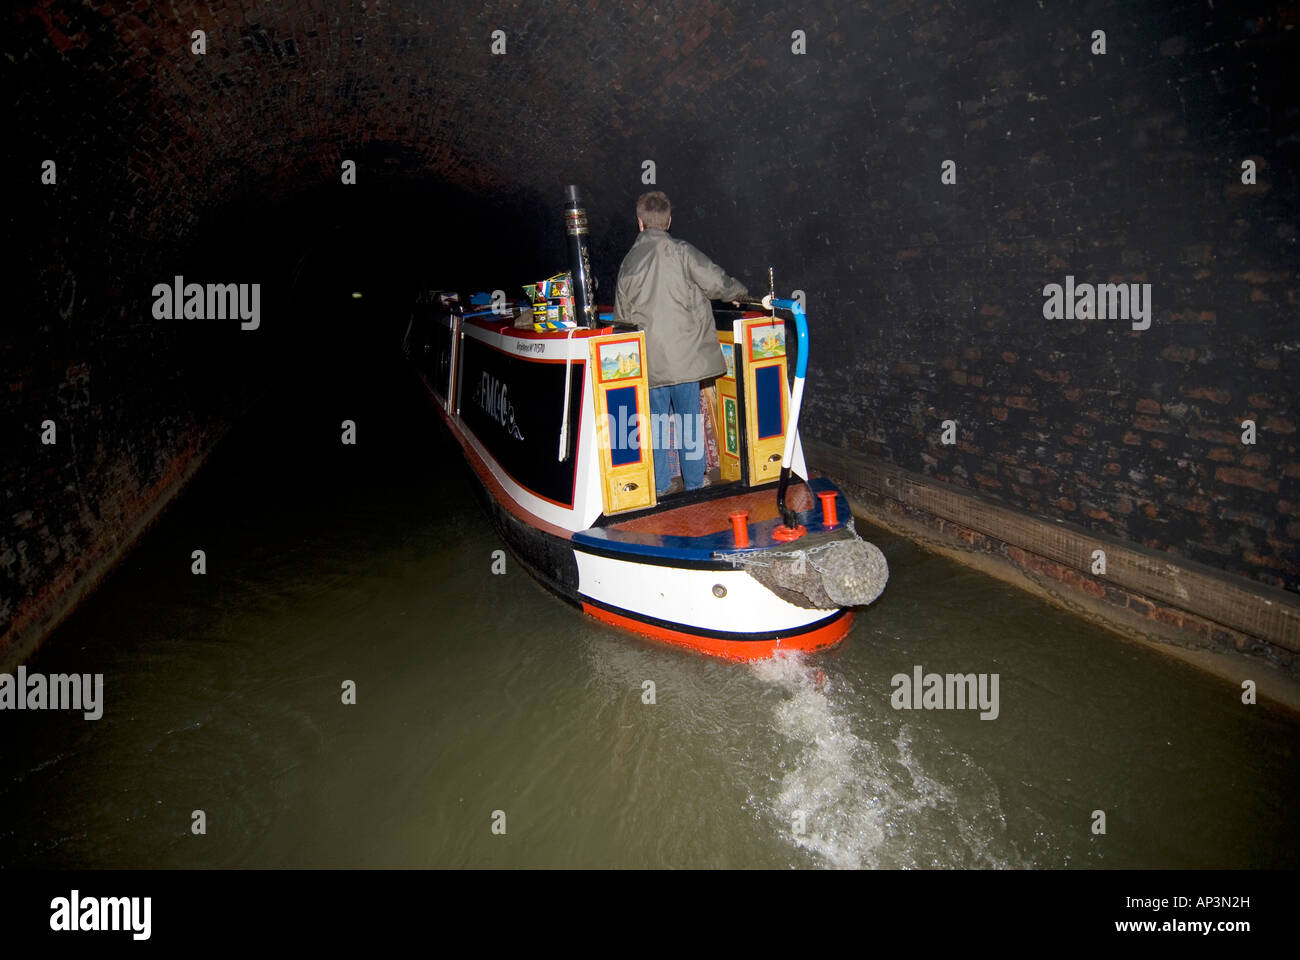 Traditional narrowboat navigating through Blisworth Tunnel on the Grand Union canal - Stock Image